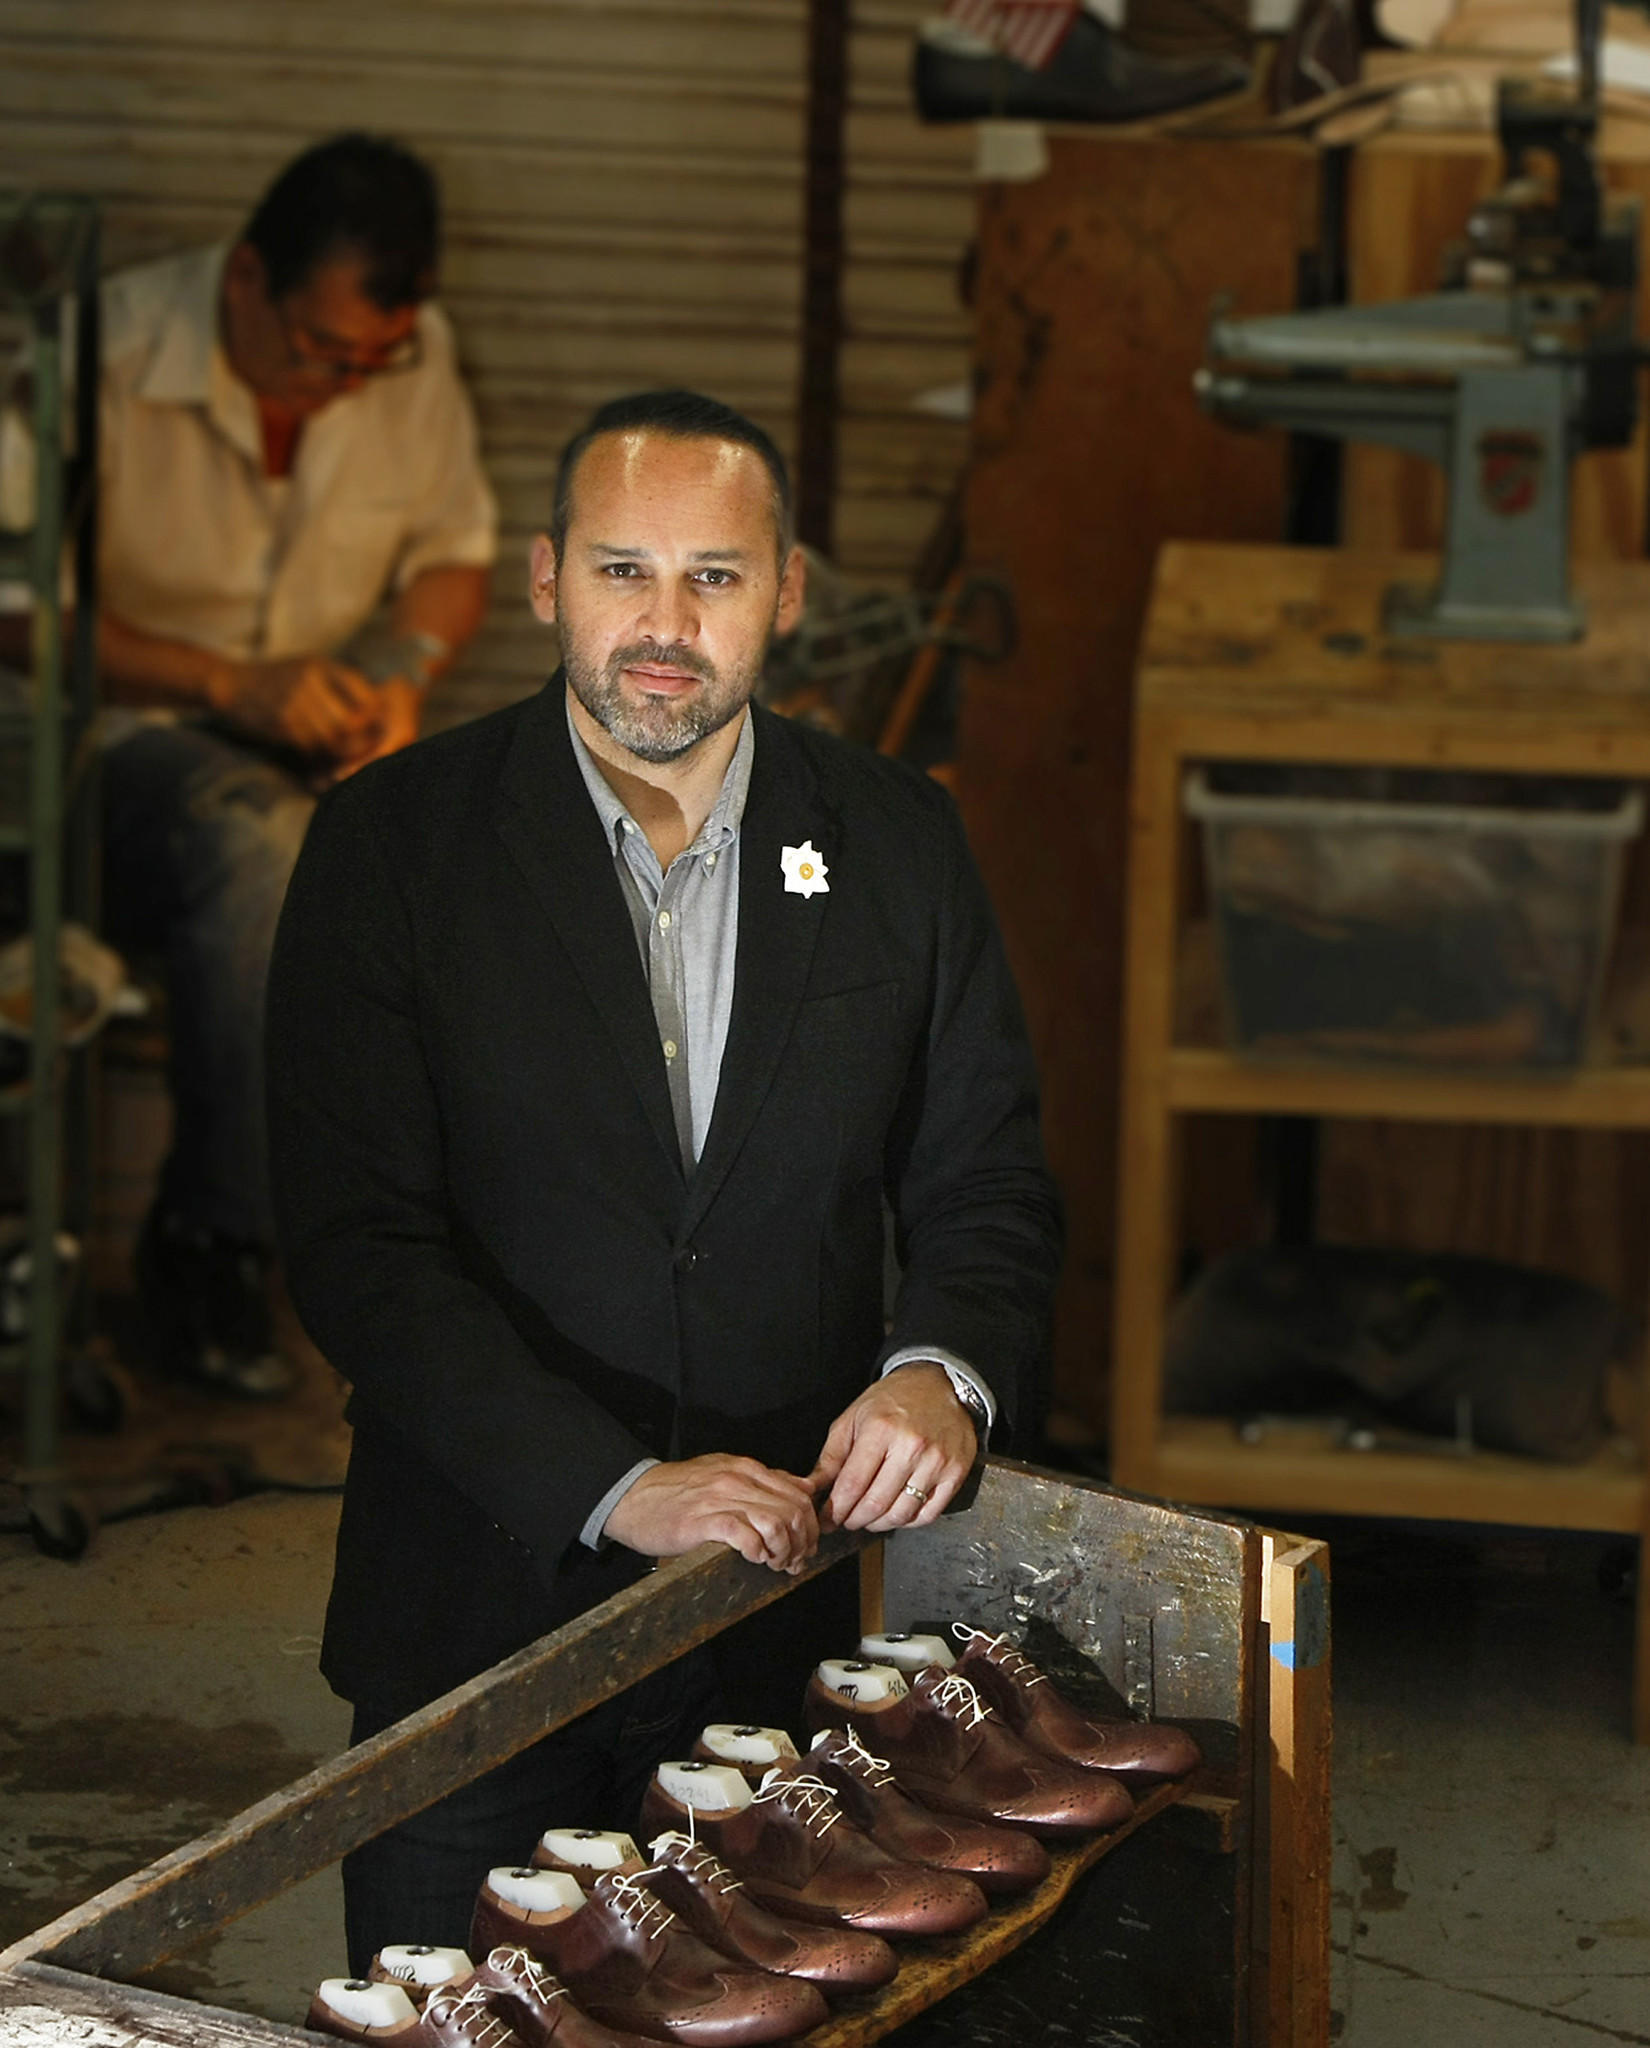 George Esquivel at his custom shoe design and manufacturing company in Buena Park.